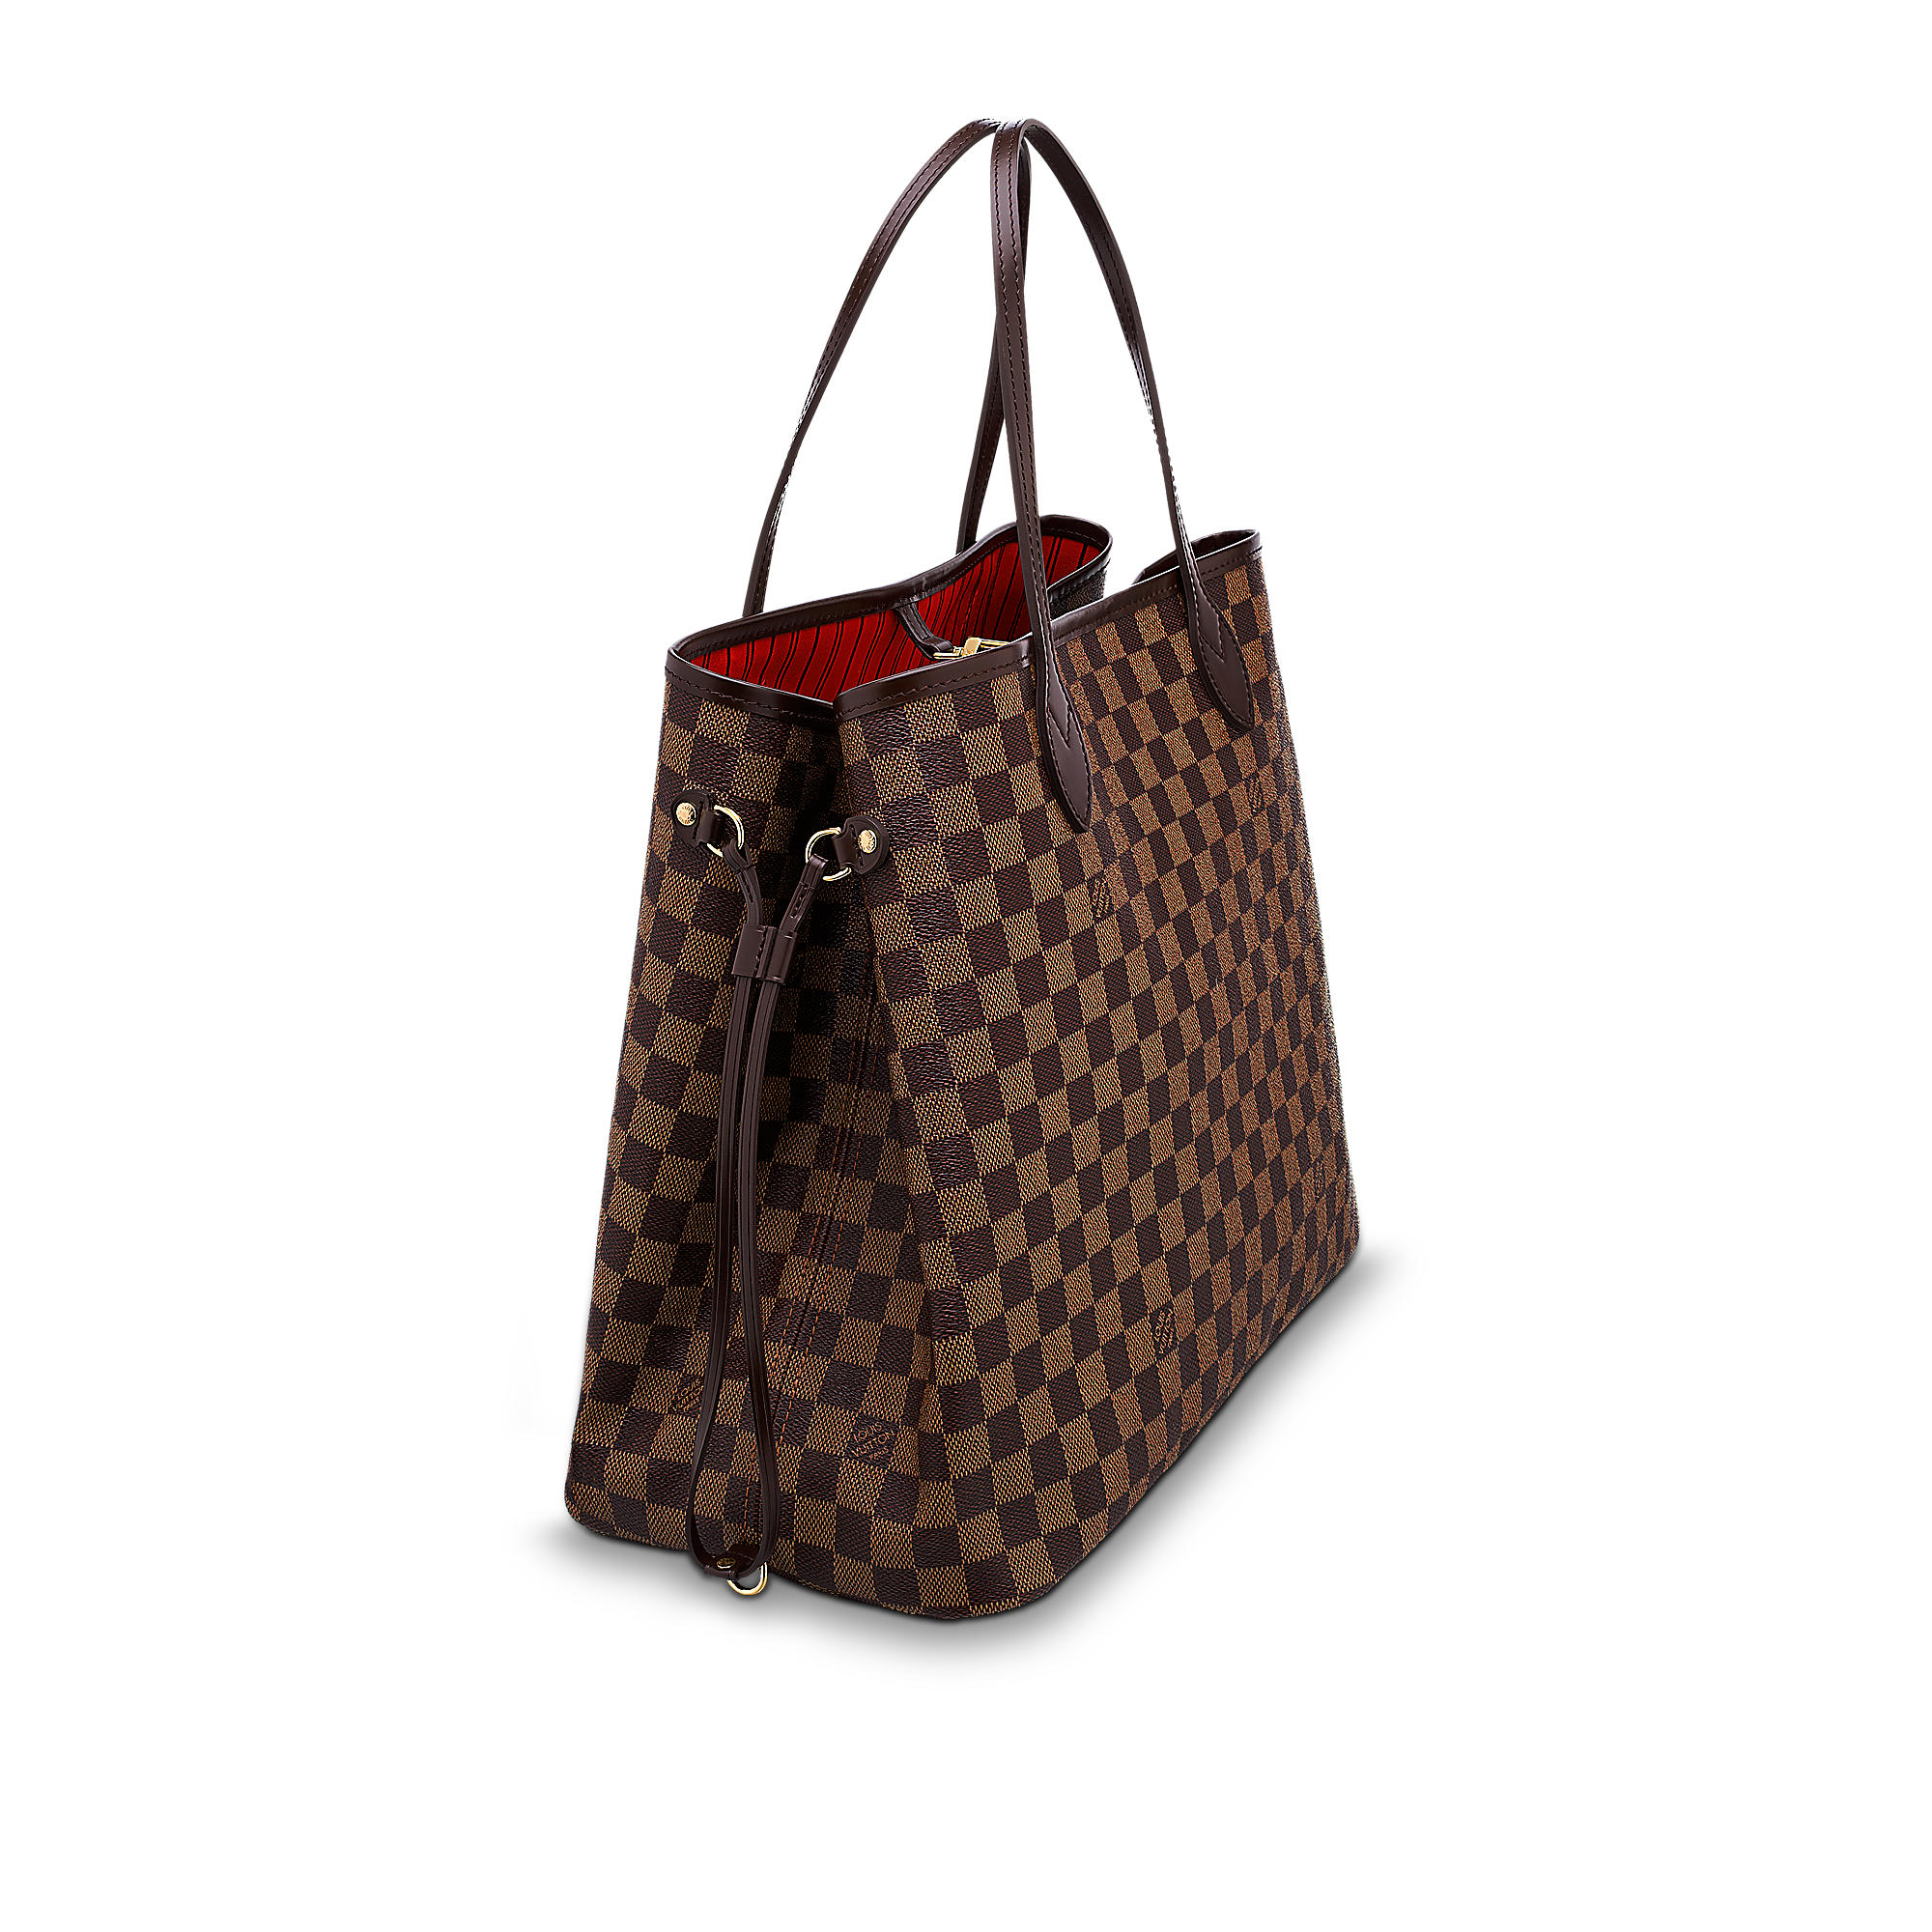 neverful gm Tela Damier Ebène